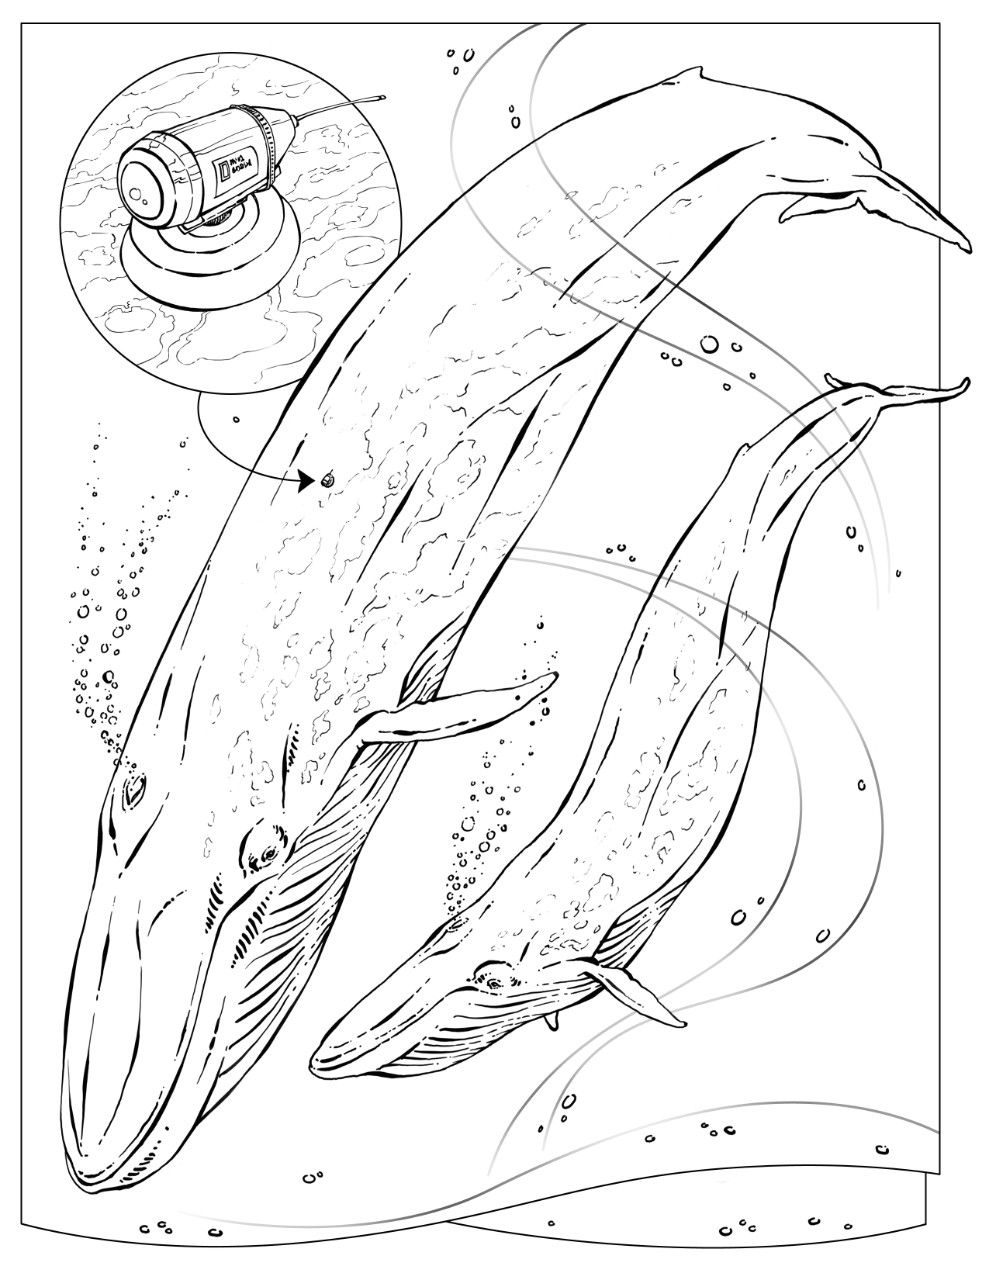 blue whale colour coloring book animals a to i coloring pages nature blue whale colour